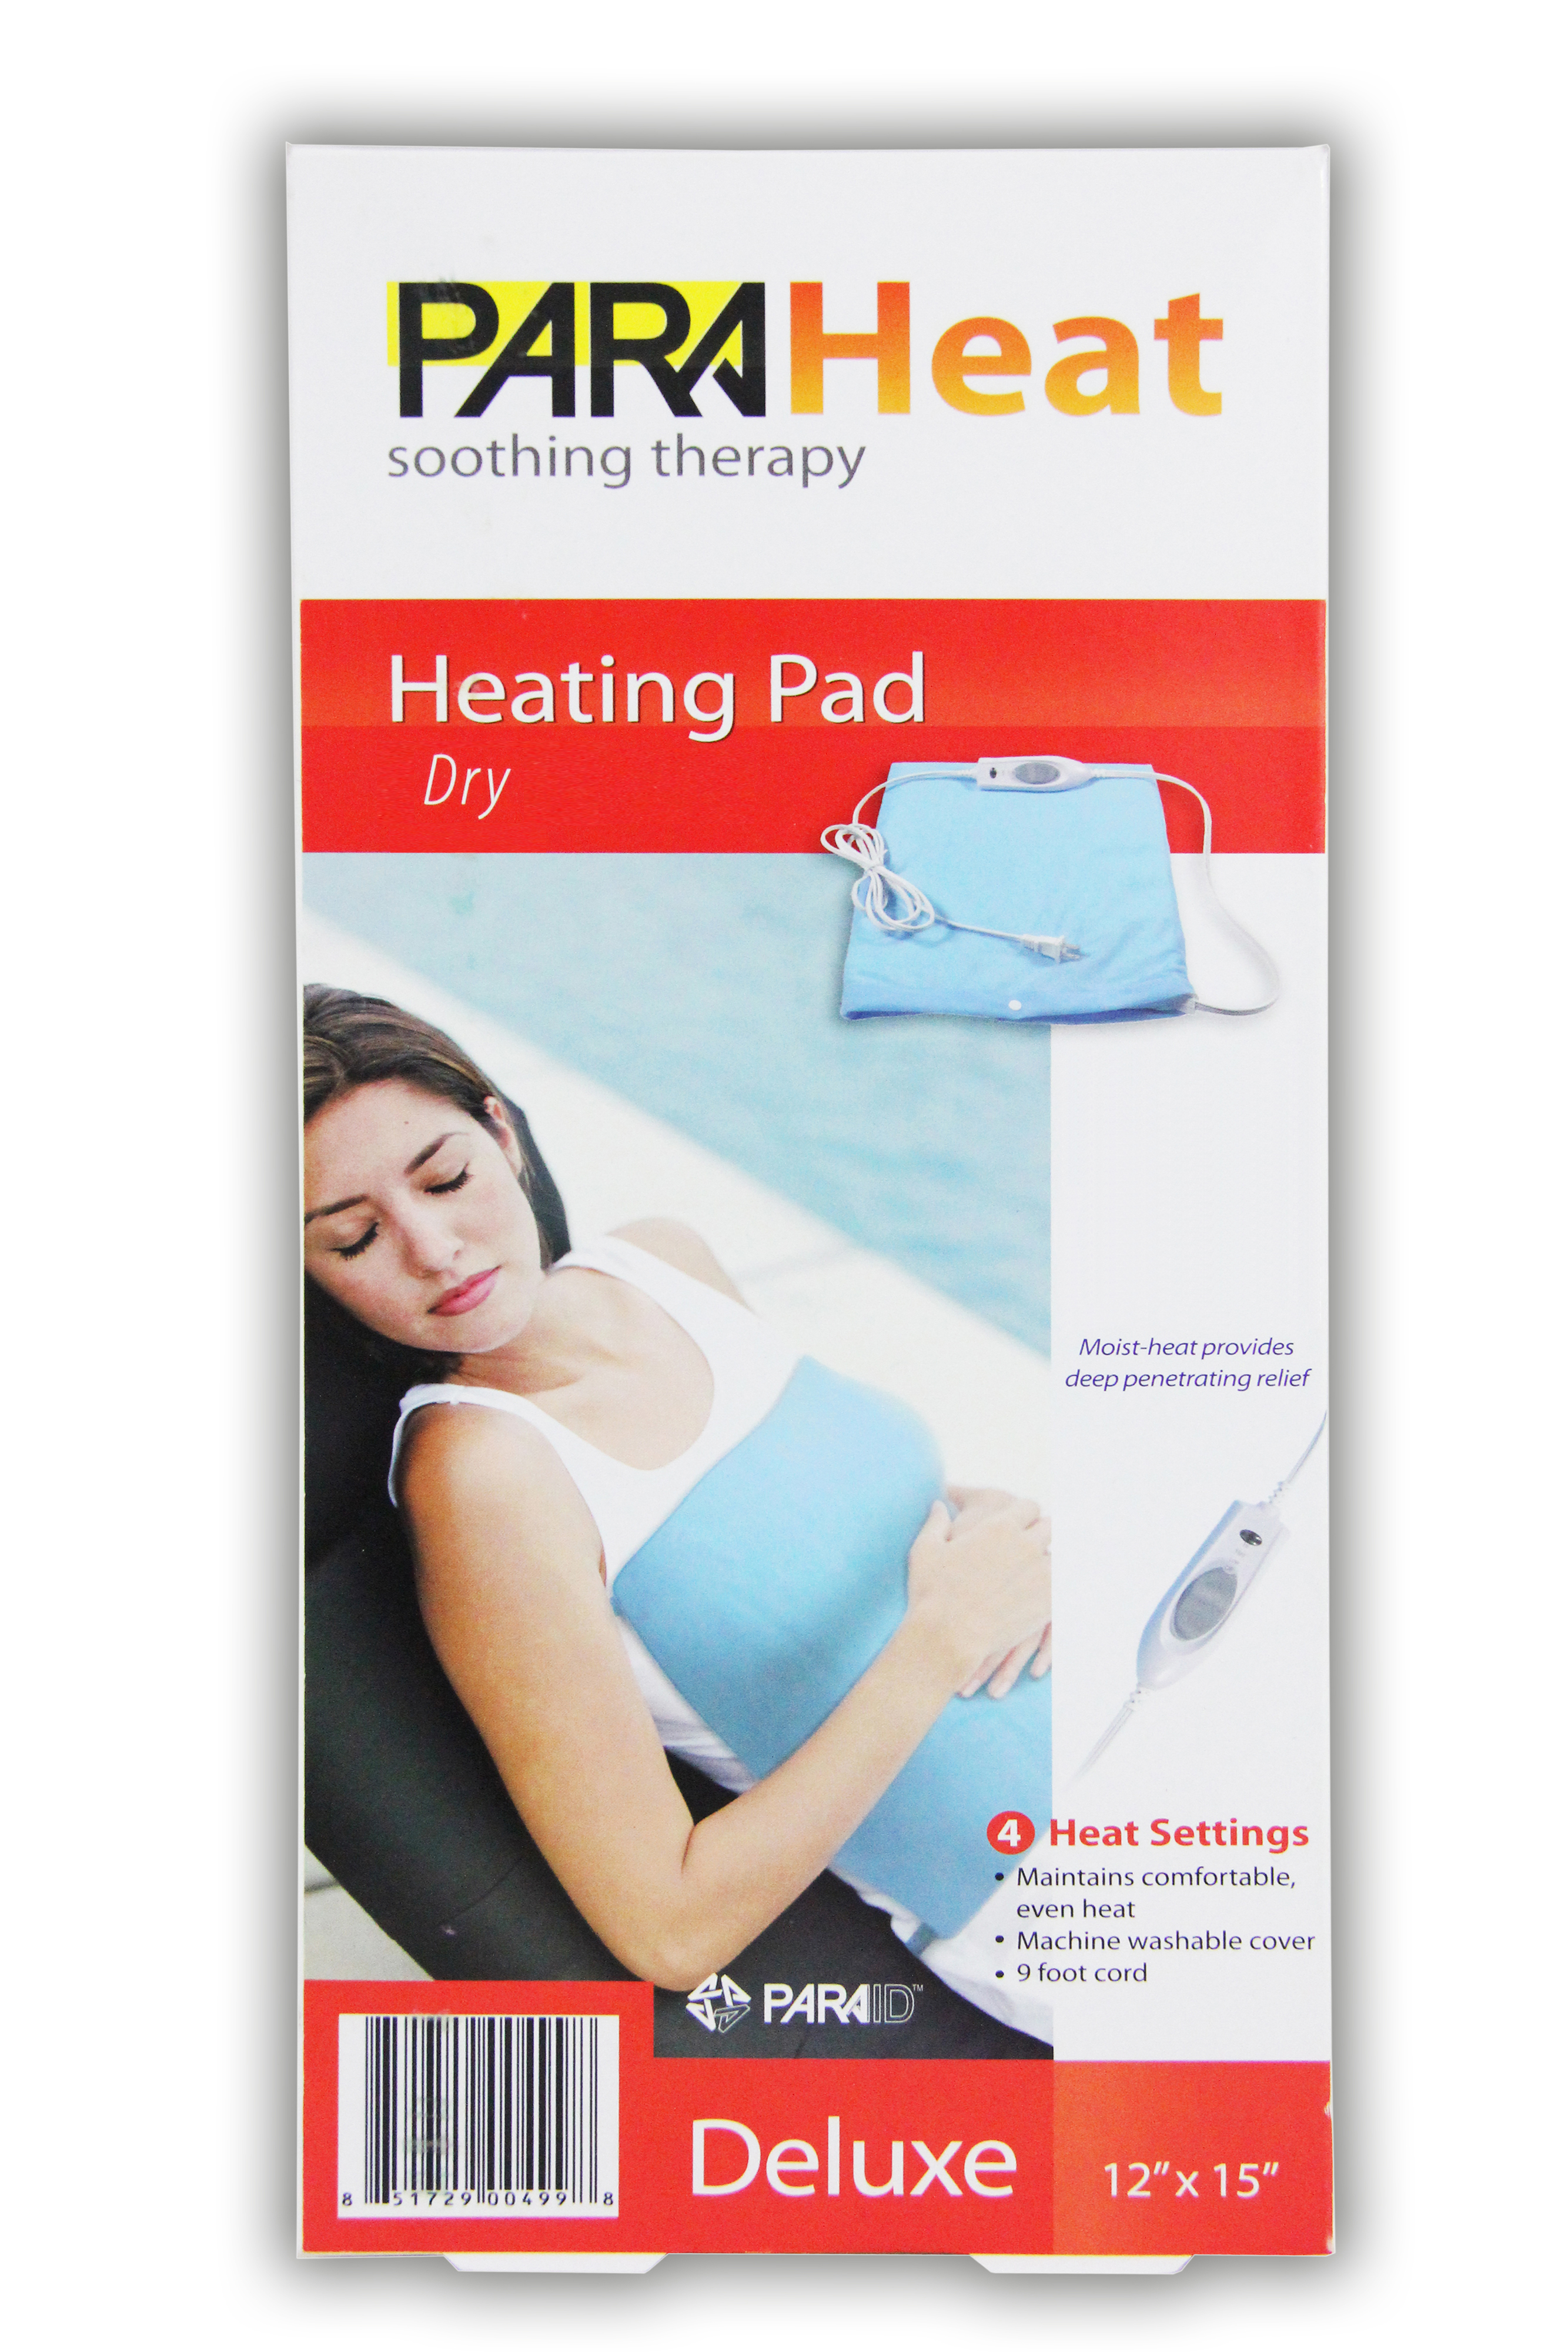 "Planet International ParaHeat Electric Heating Pad 12"" x 15"" Blanket Arthritis Muscle Therapy NEW! at Sears.com"